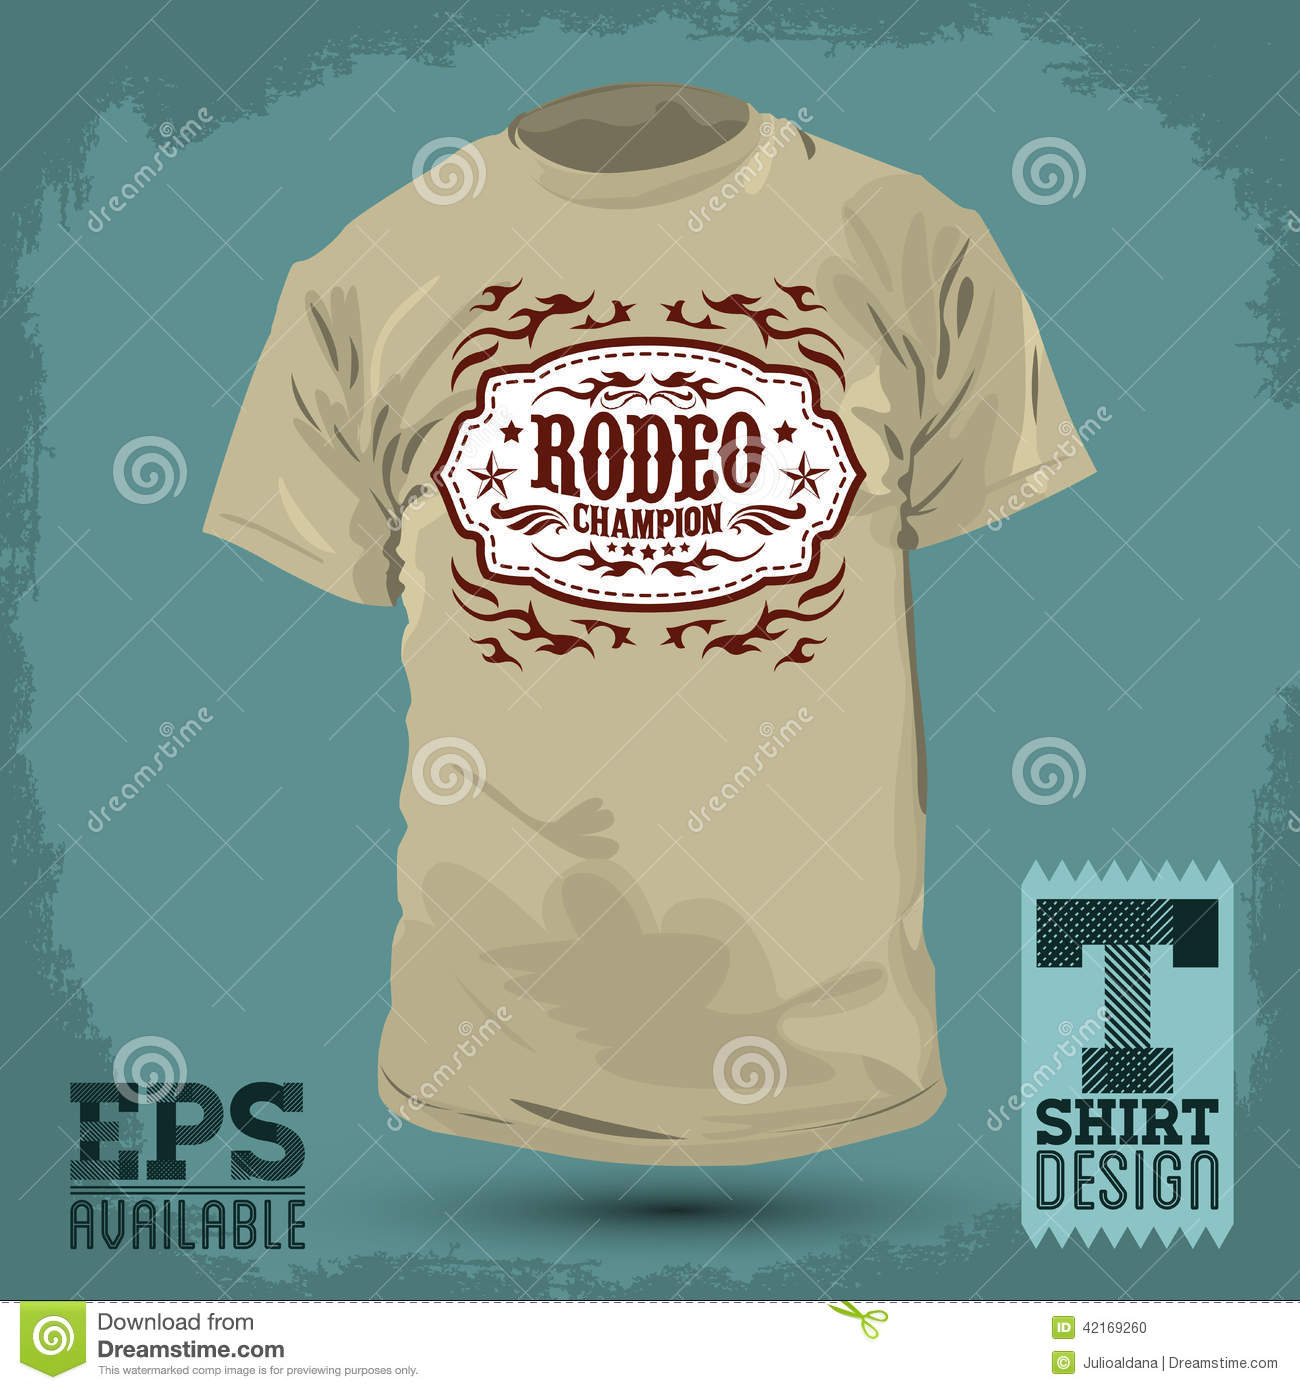 Graphic t shirt design rodeo champion badge stock for Stock t shirt designs